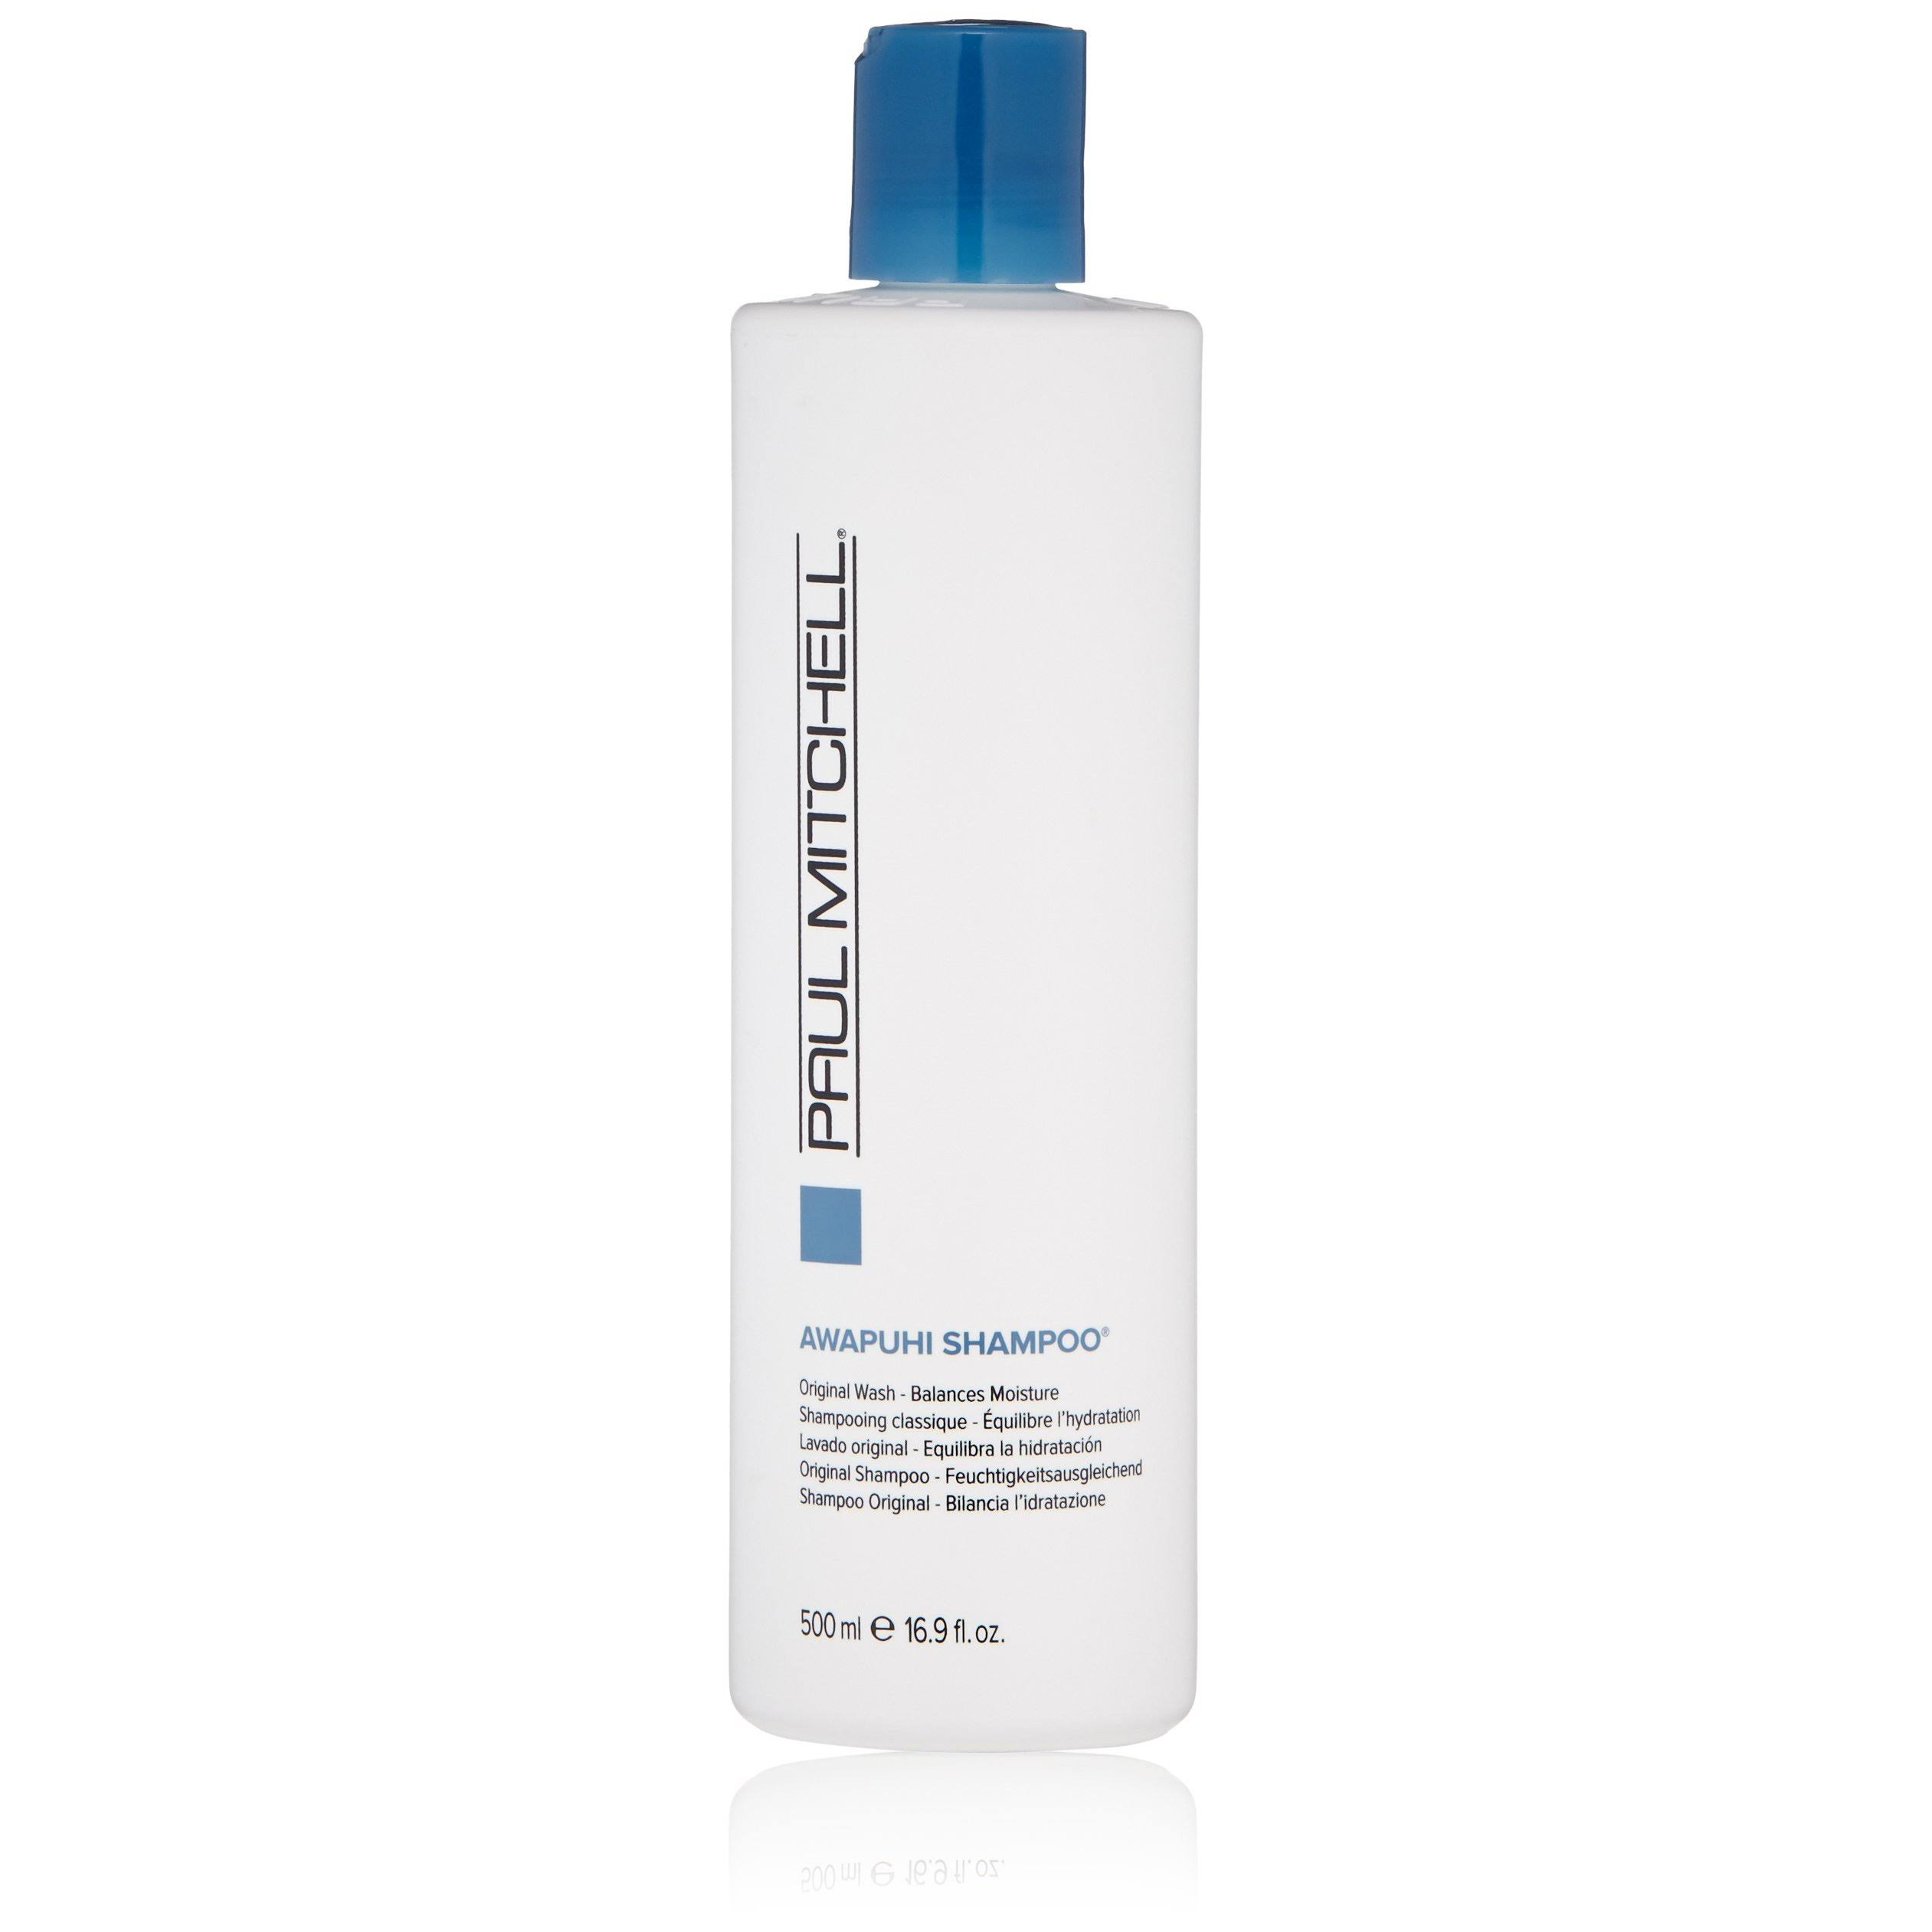 Paul Mitchell Awapuhi Shampoo - 500ml